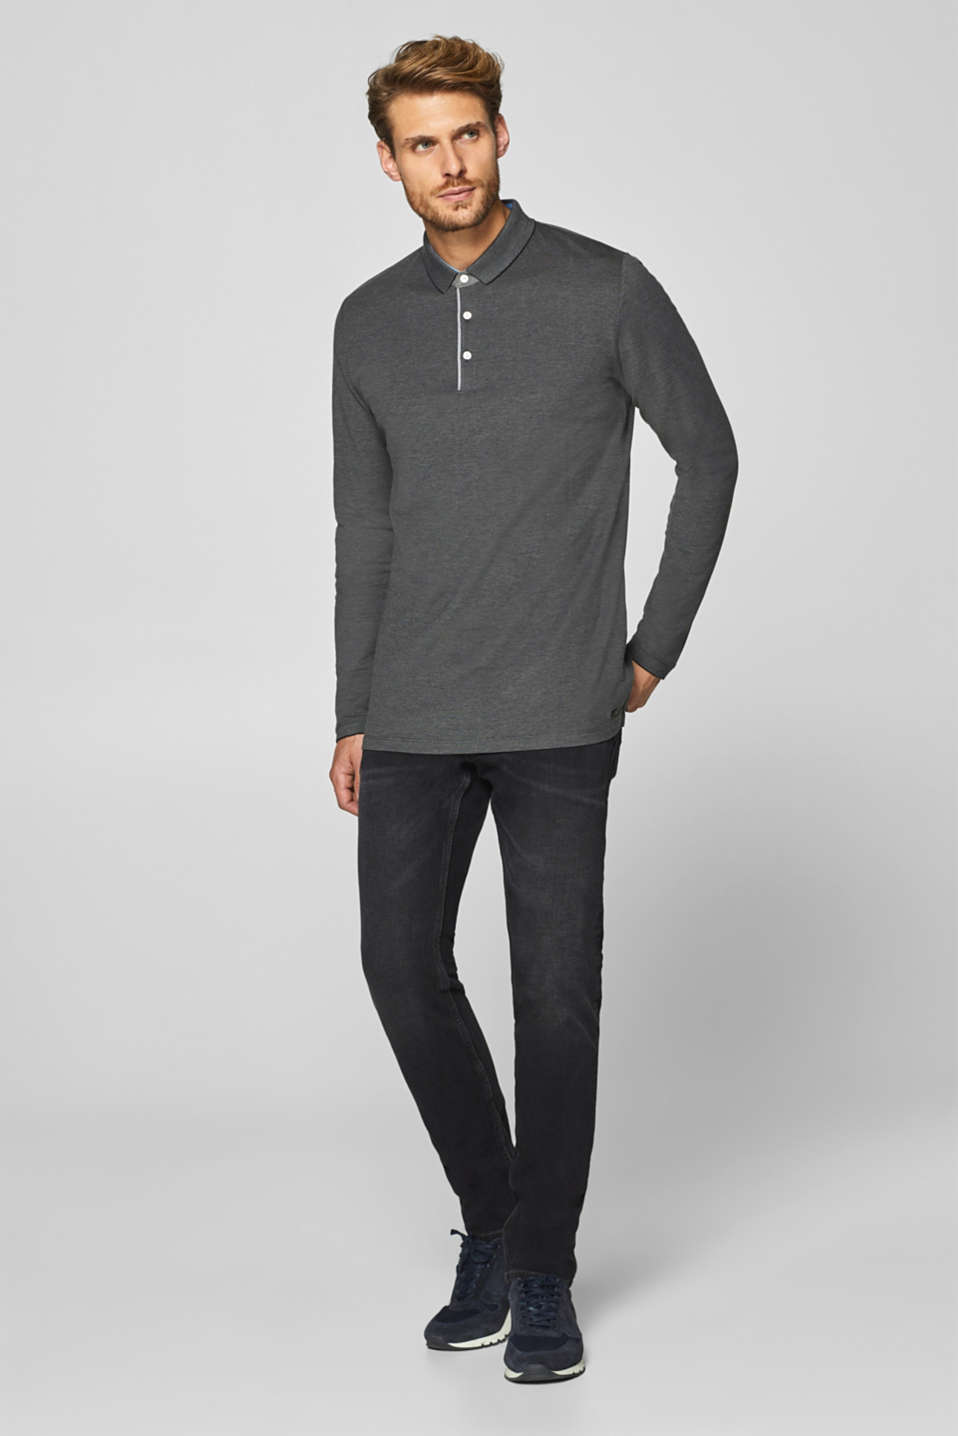 Esprit - Long sleeve polo shirt in jersey, 100% cotton